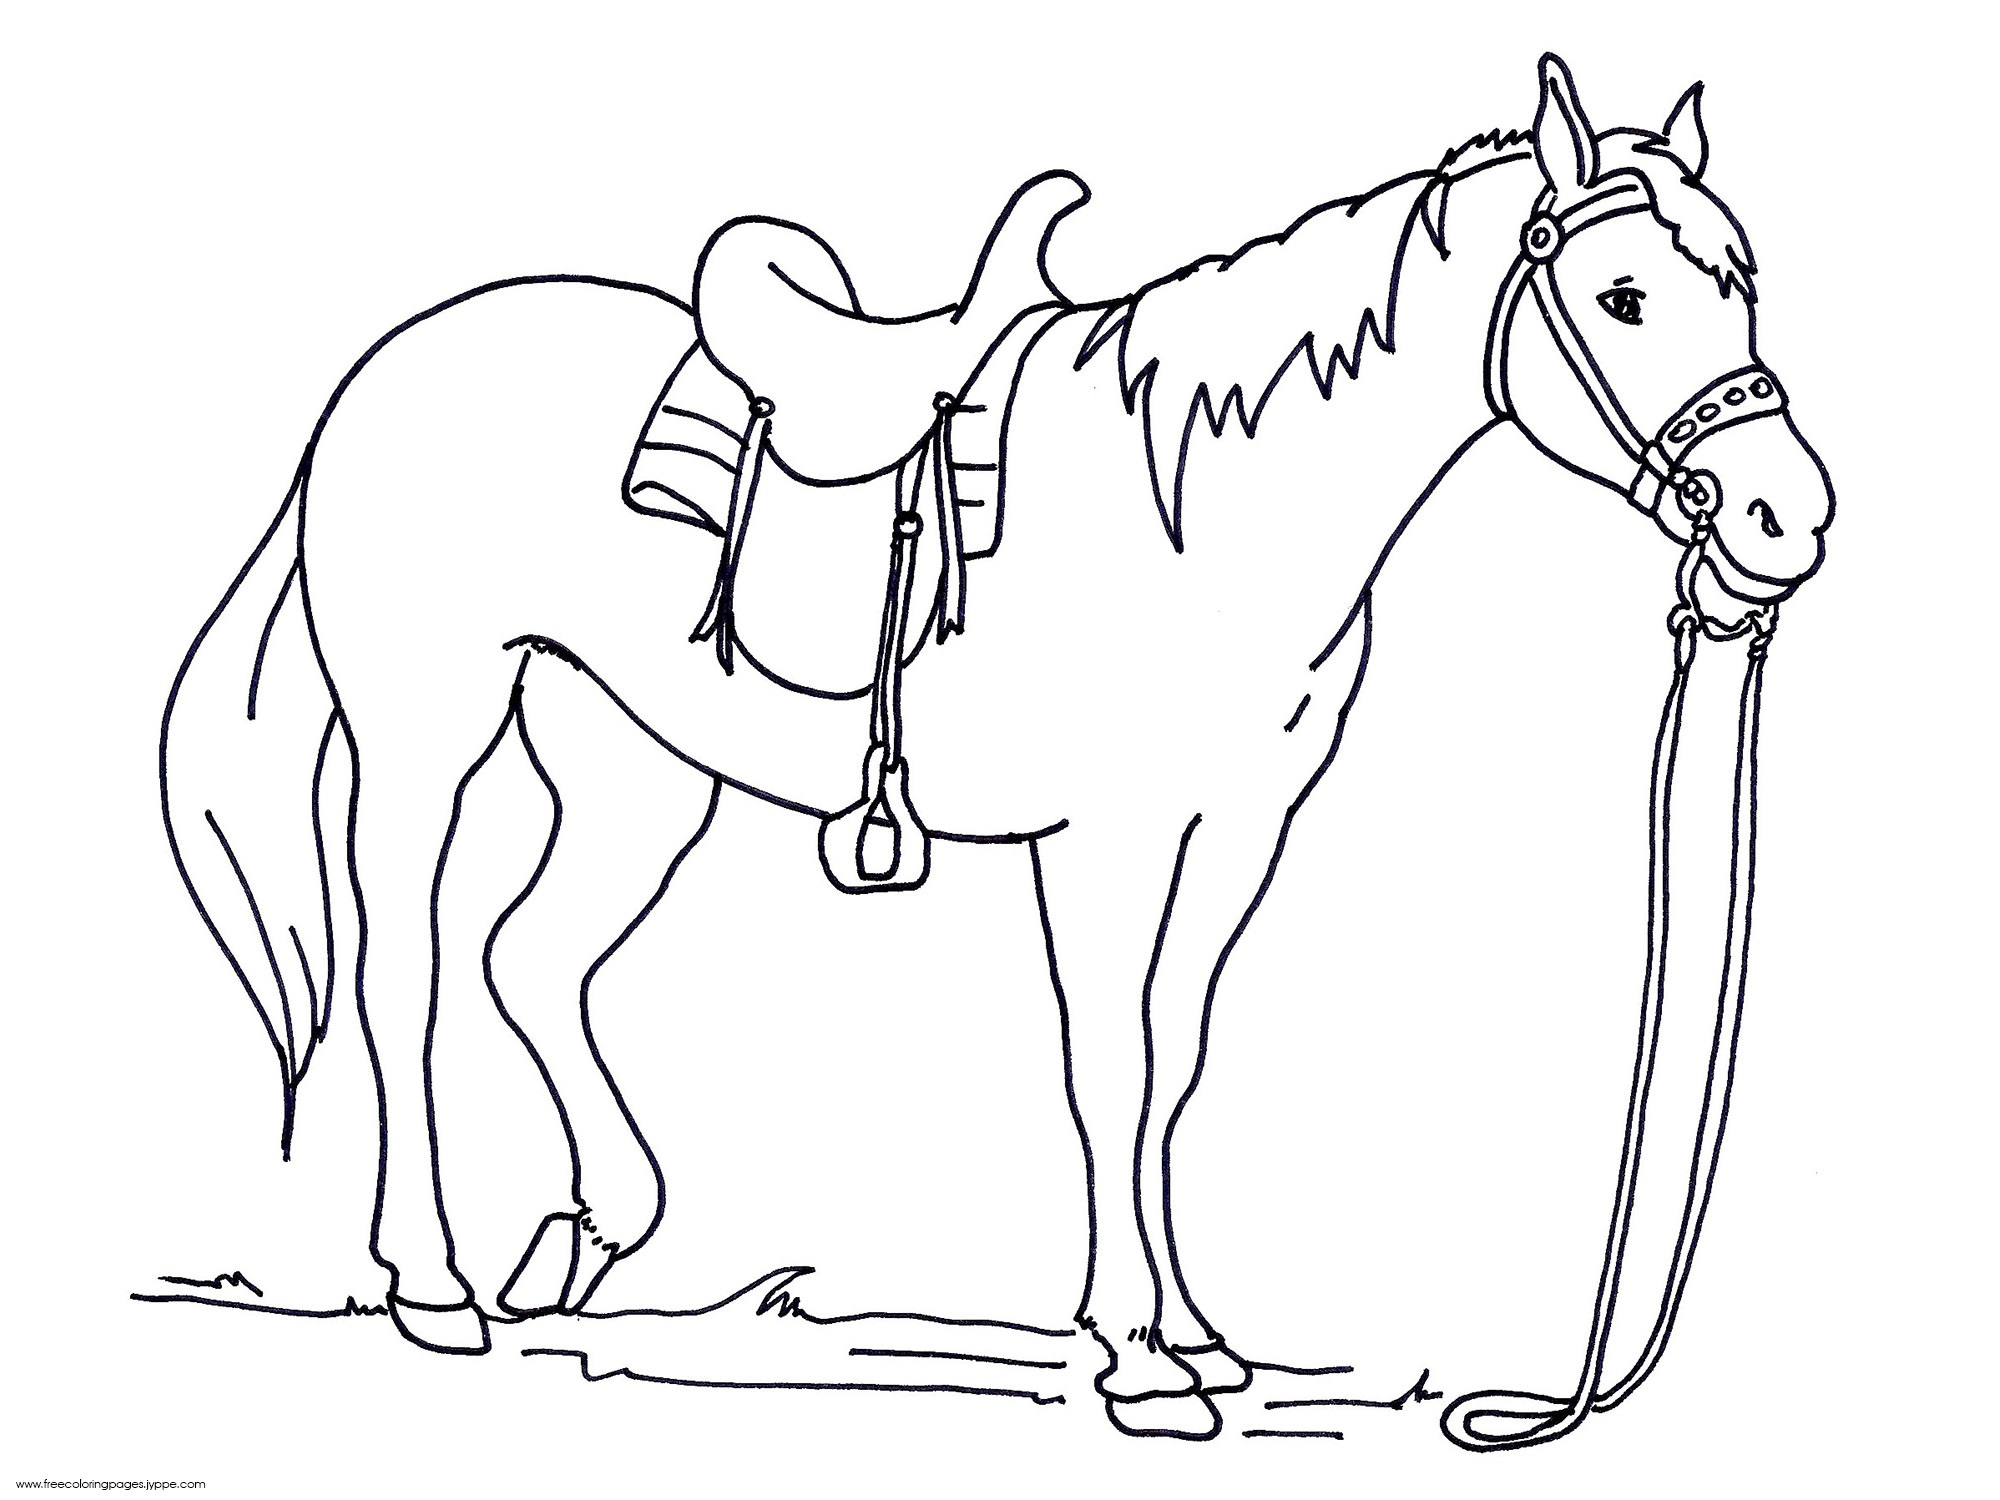 2000x1500 Horse Coloring Pages For Kindergarten Learning Printable